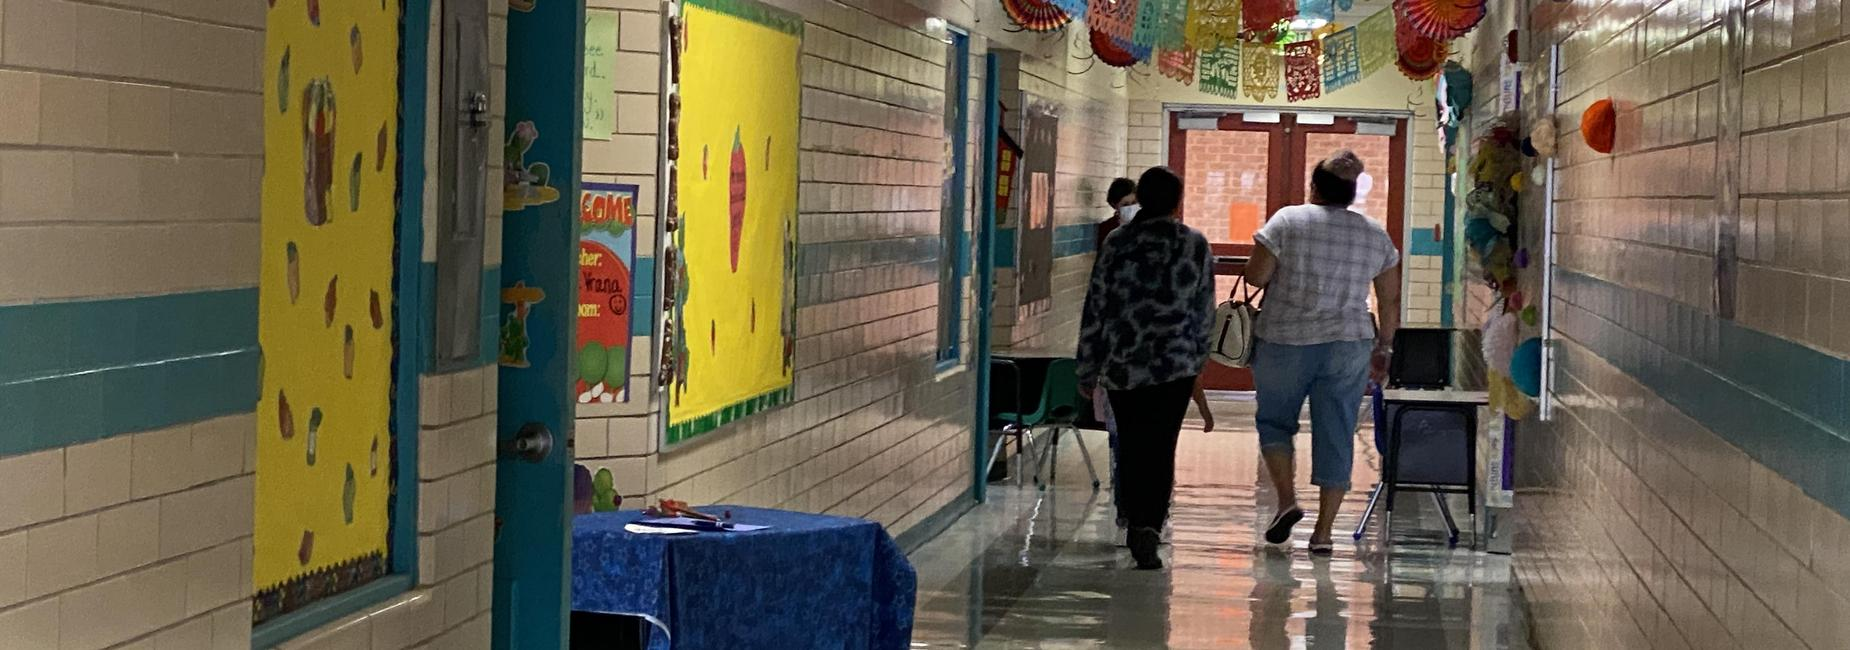 Open House 2021-2022 Hallway with families